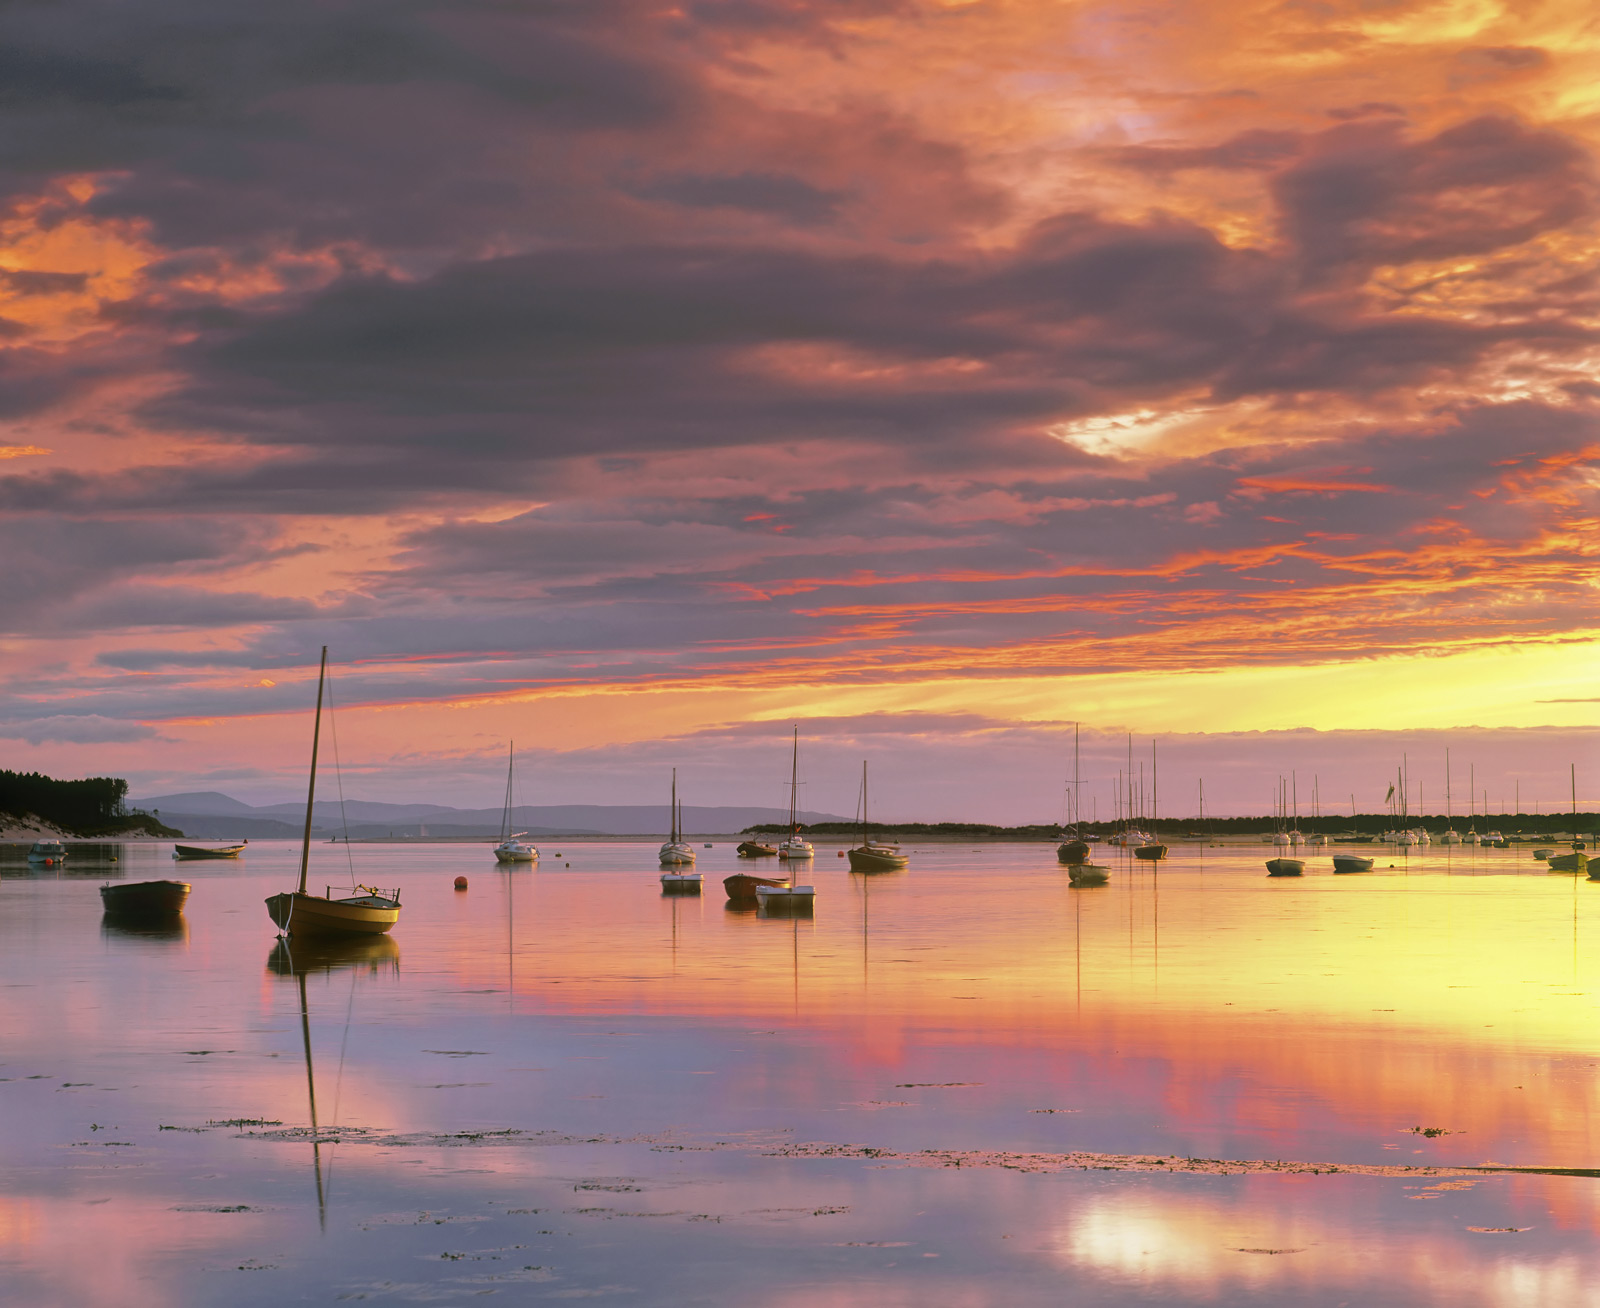 A fiery red sunset at Findhorn bay near the mouth of the river Findhorn. Sunset coincided with the turn of the tide and...